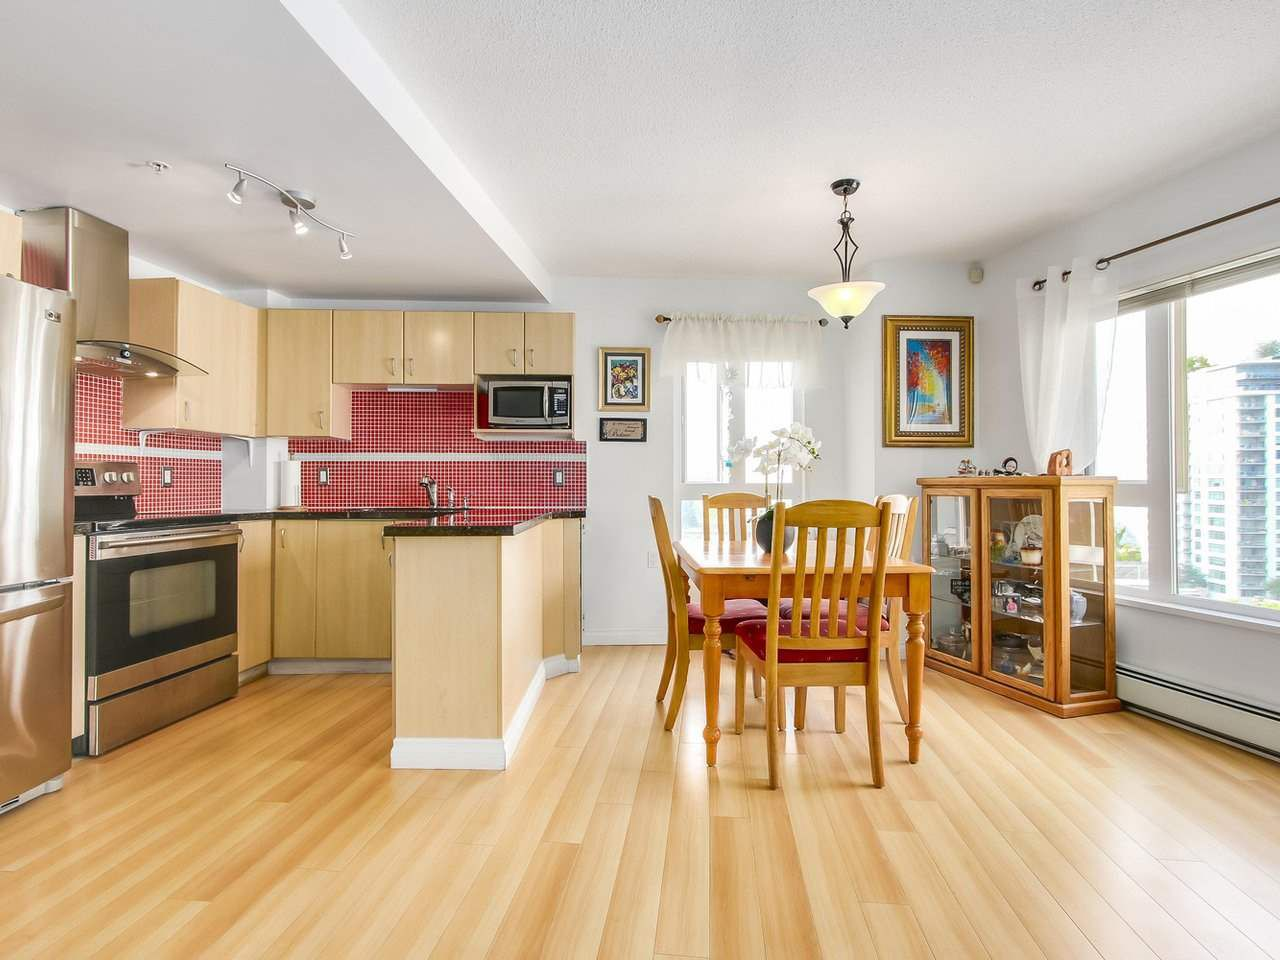 """Photo 11: Photos: 801 121 W 15TH Street in North Vancouver: Central Lonsdale Condo for sale in """"ALEGRIA"""" : MLS®# R2196958"""